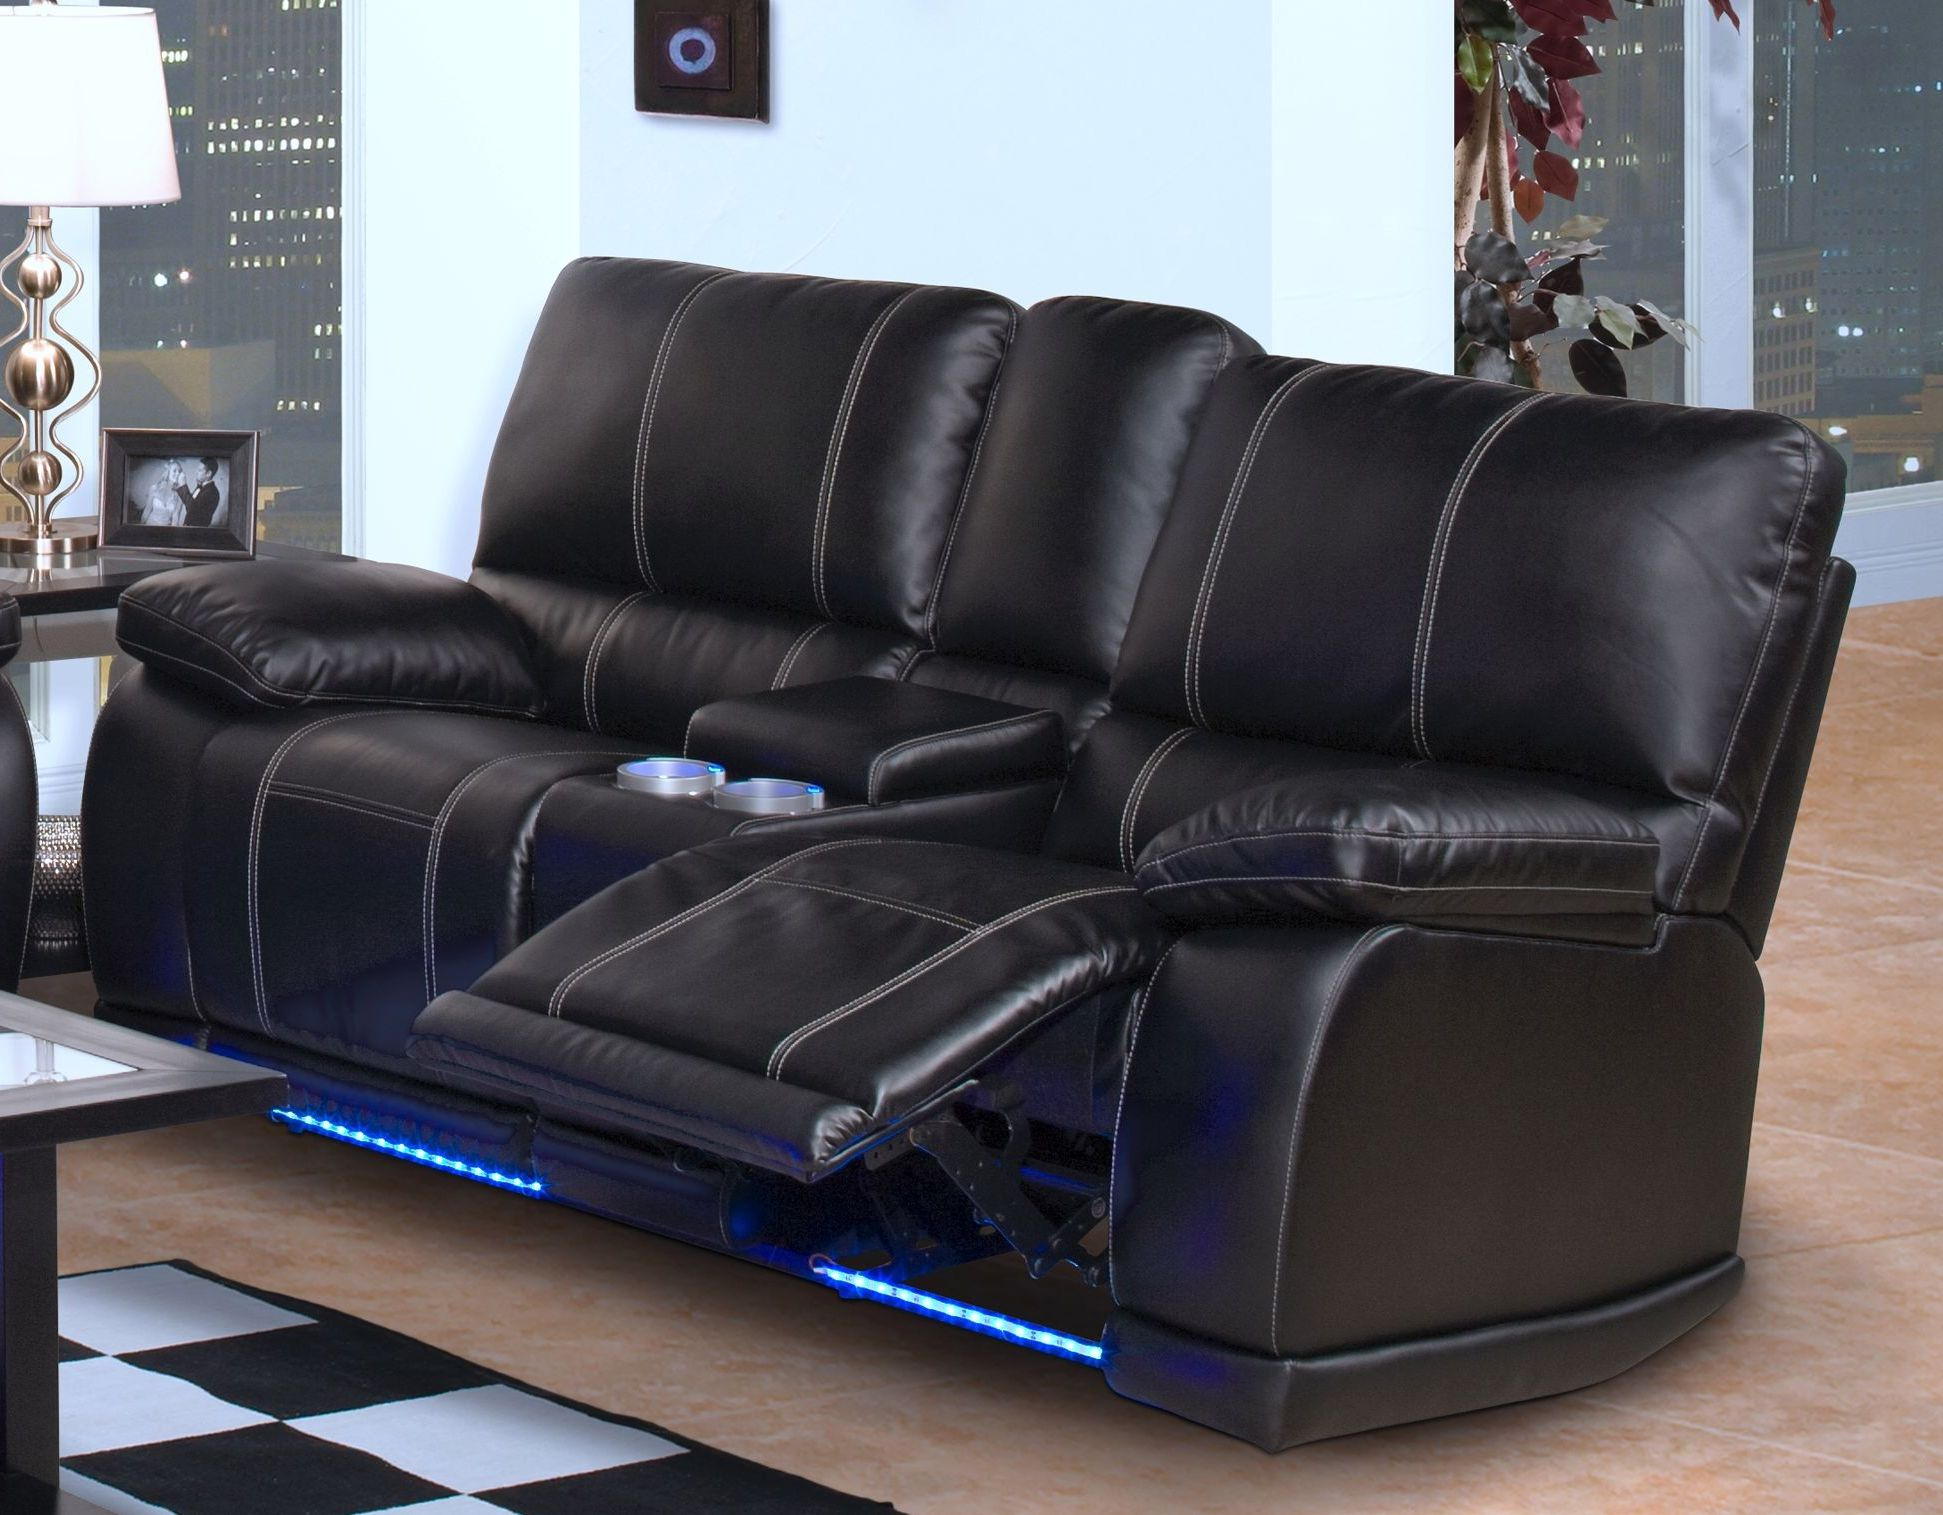 Fancy Leather Reclining Sofa 72 On Sofas And Couches Ideas With Leather  Reclining Sofa